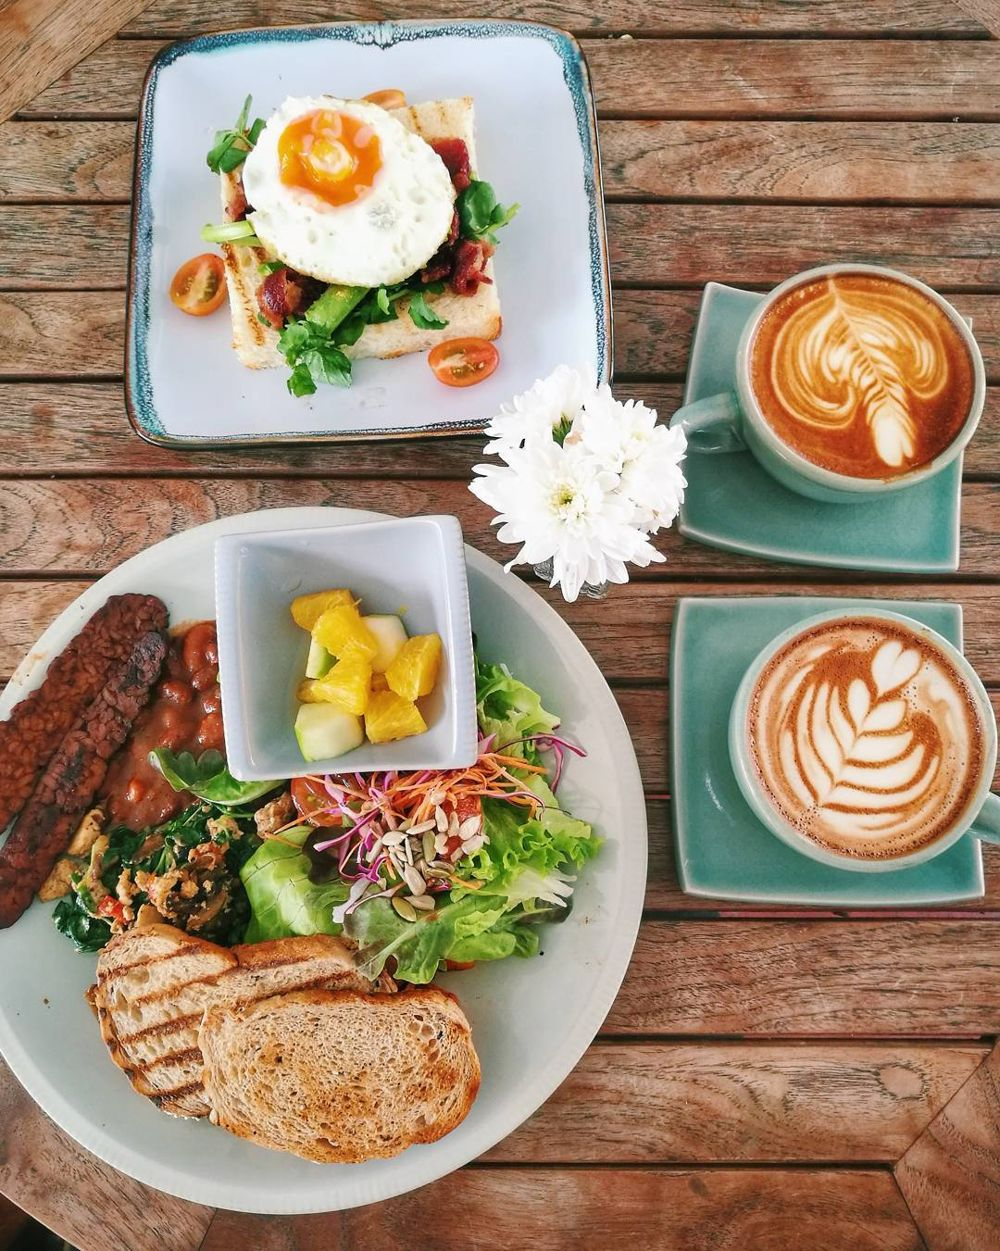 Toast with egg and Vegan big breakfast at RGB Cafe